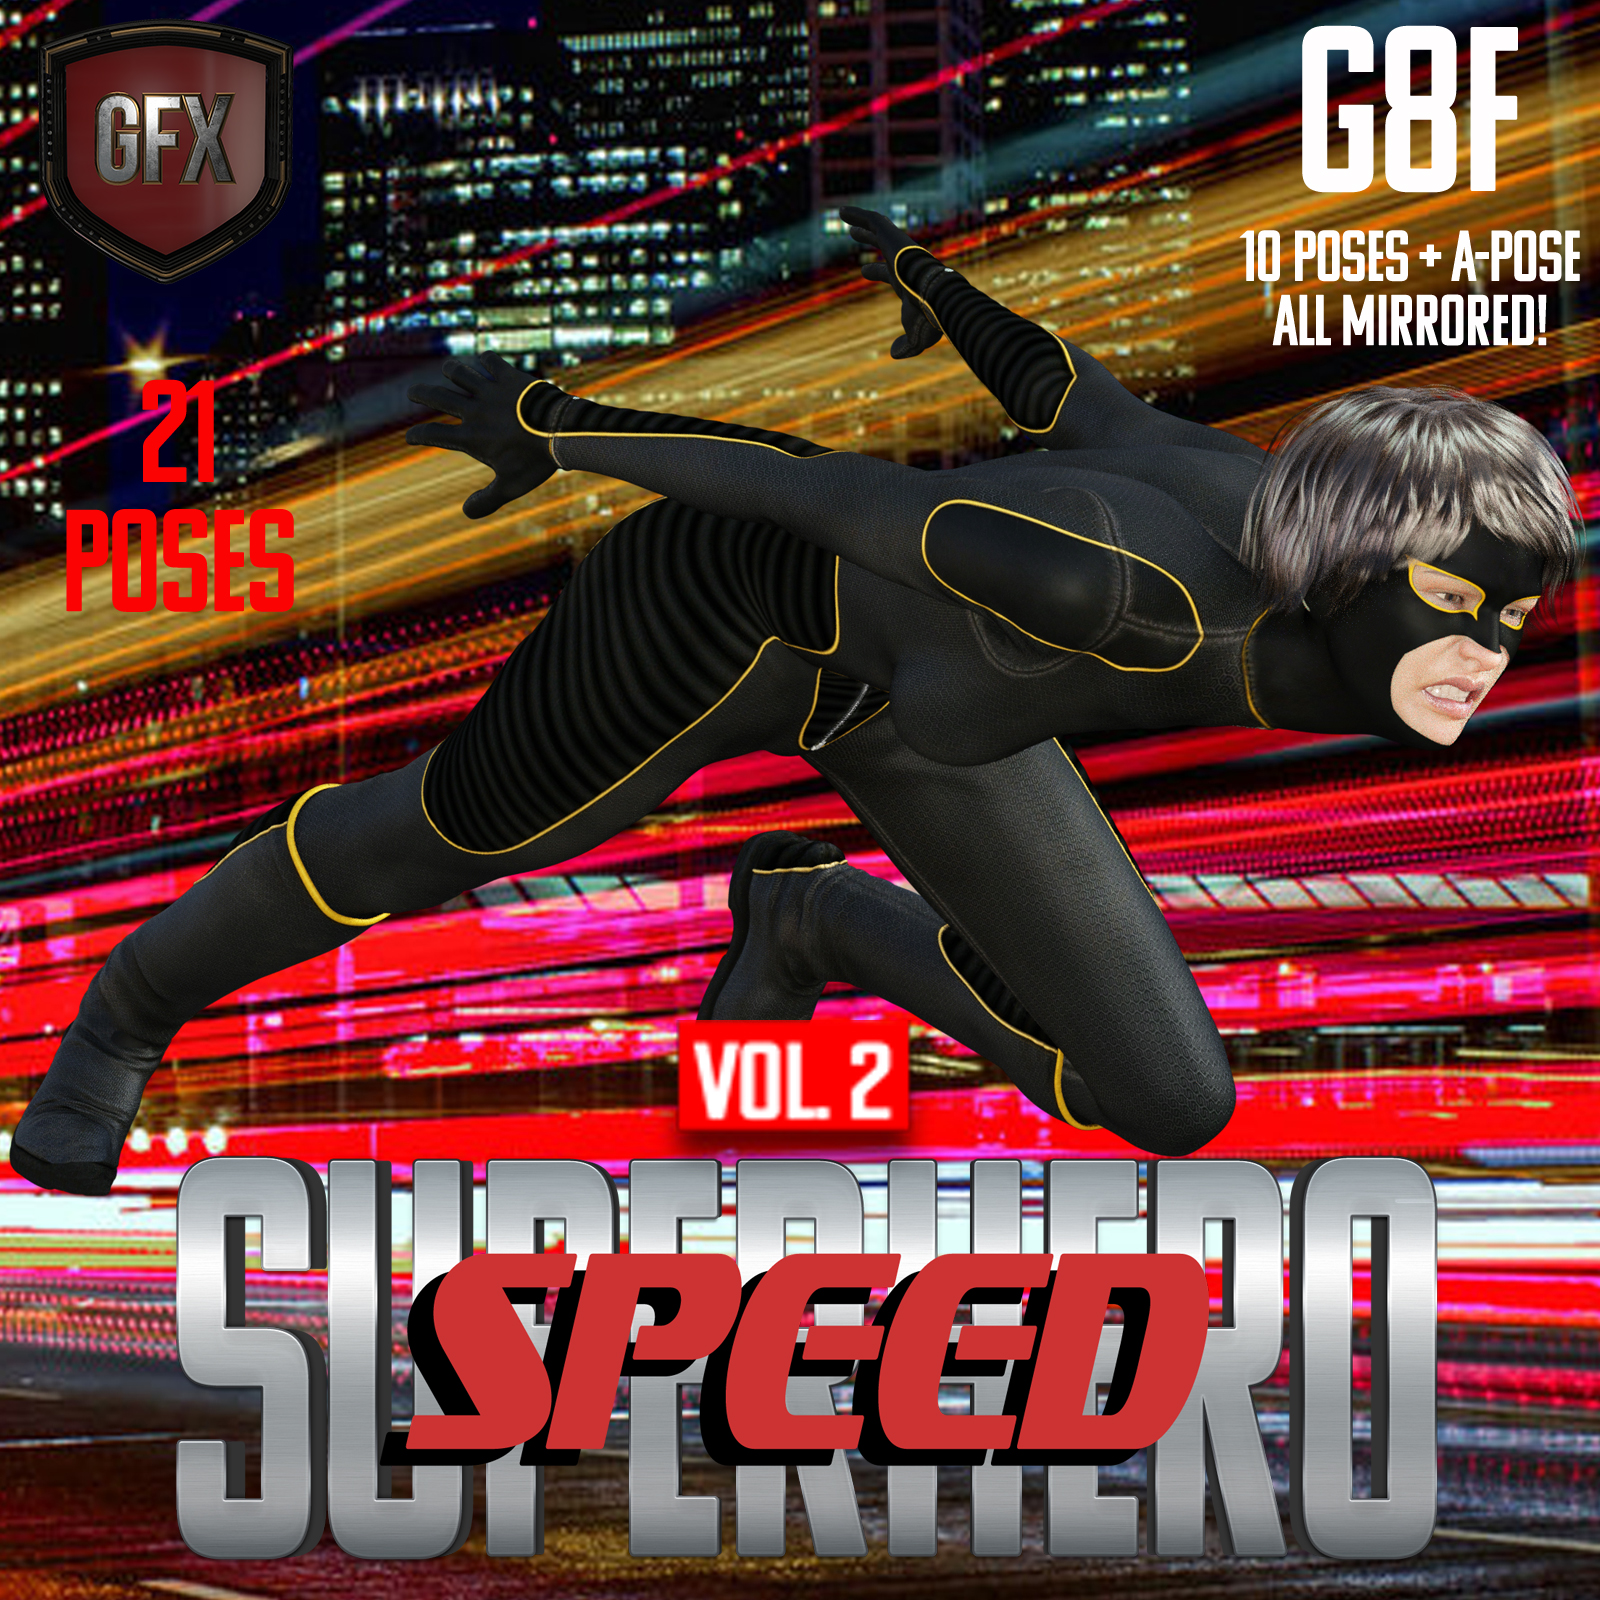 SuperHero Speed for G8F Volume 2 by GriffinFX